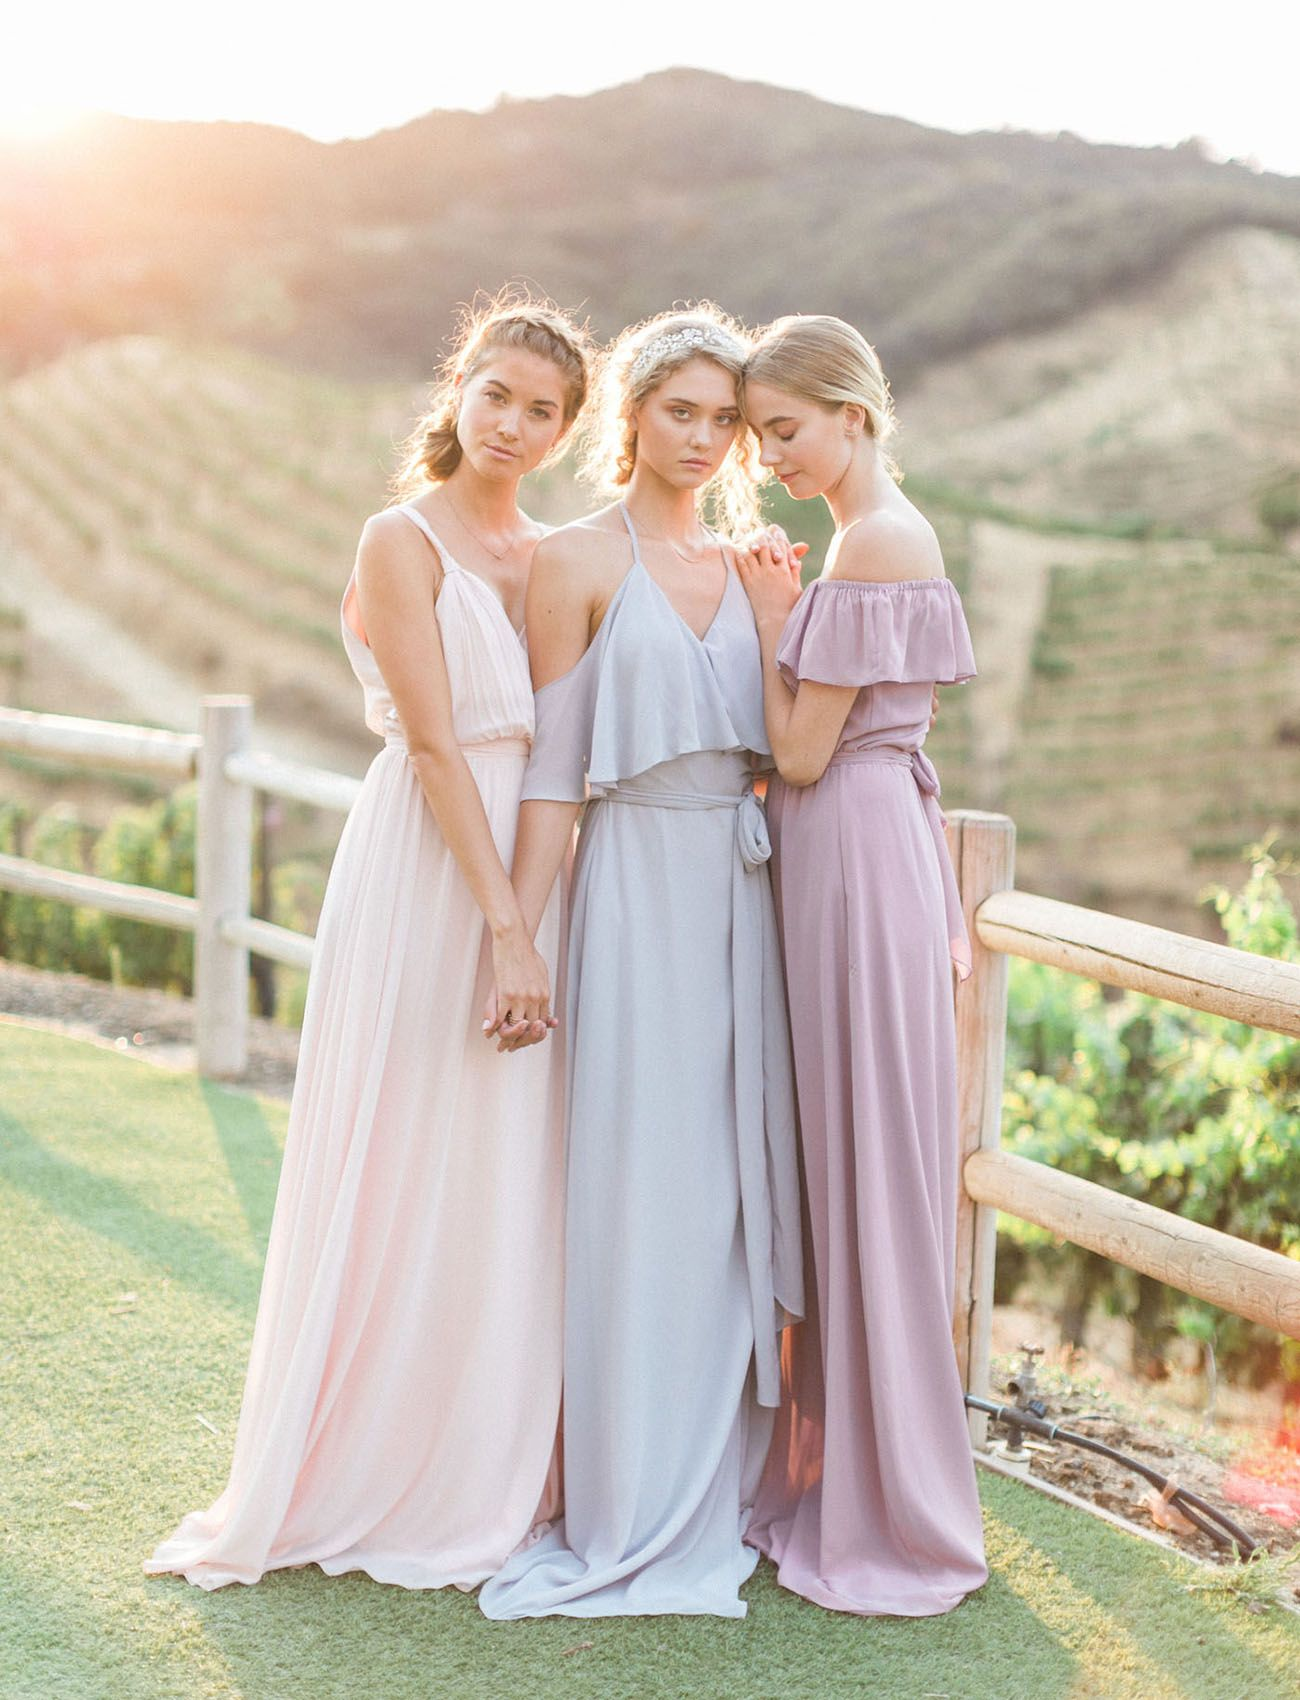 The new romantic bridesmaid dresses by joanna august blush pink the new romantic bridesmaid dresses by joanna august ombrellifo Images